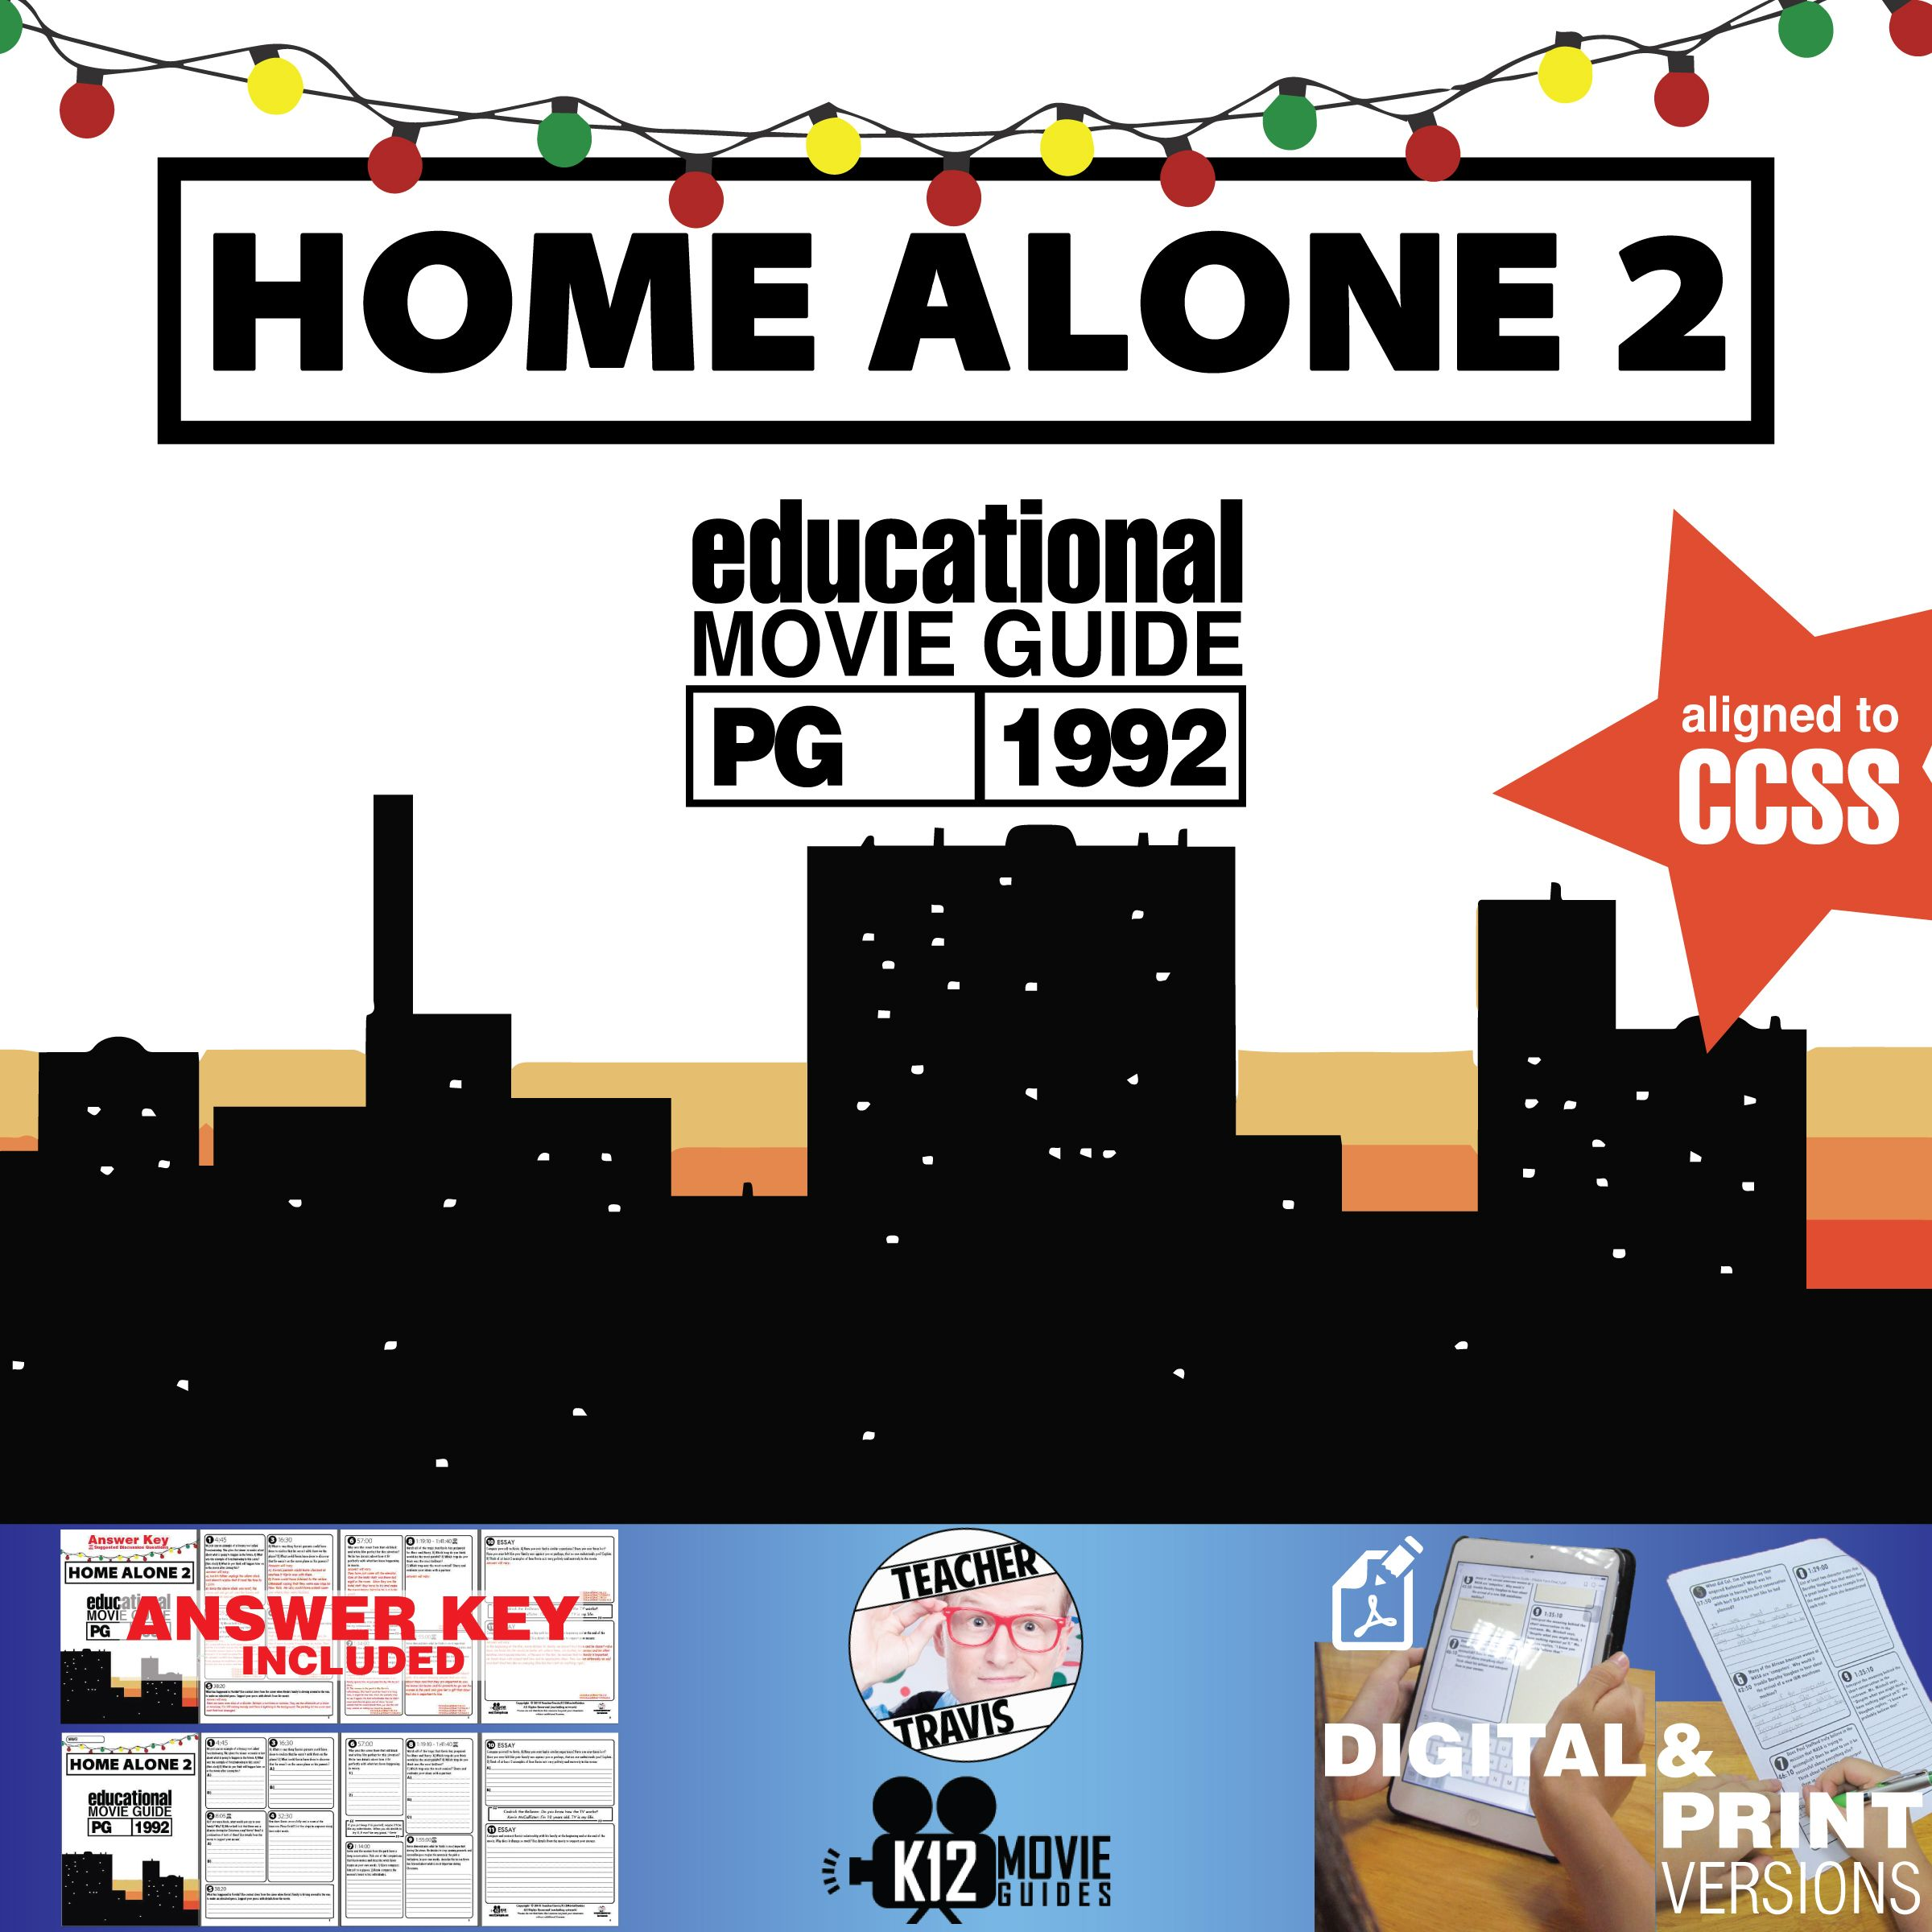 This #HomeAlone 2 Movie Viewing Guide (PG - 1992) is a great Christmas activity. Challenge your students think about the deeper meaning of Christmas that this movie has to offer. #HomeAlone2 #CCSS #KevinMcCallister #ChristmasActivity #Christmas #Teachers #MovieGuides #LessonPlans #TPT #TeachersPayTeachers